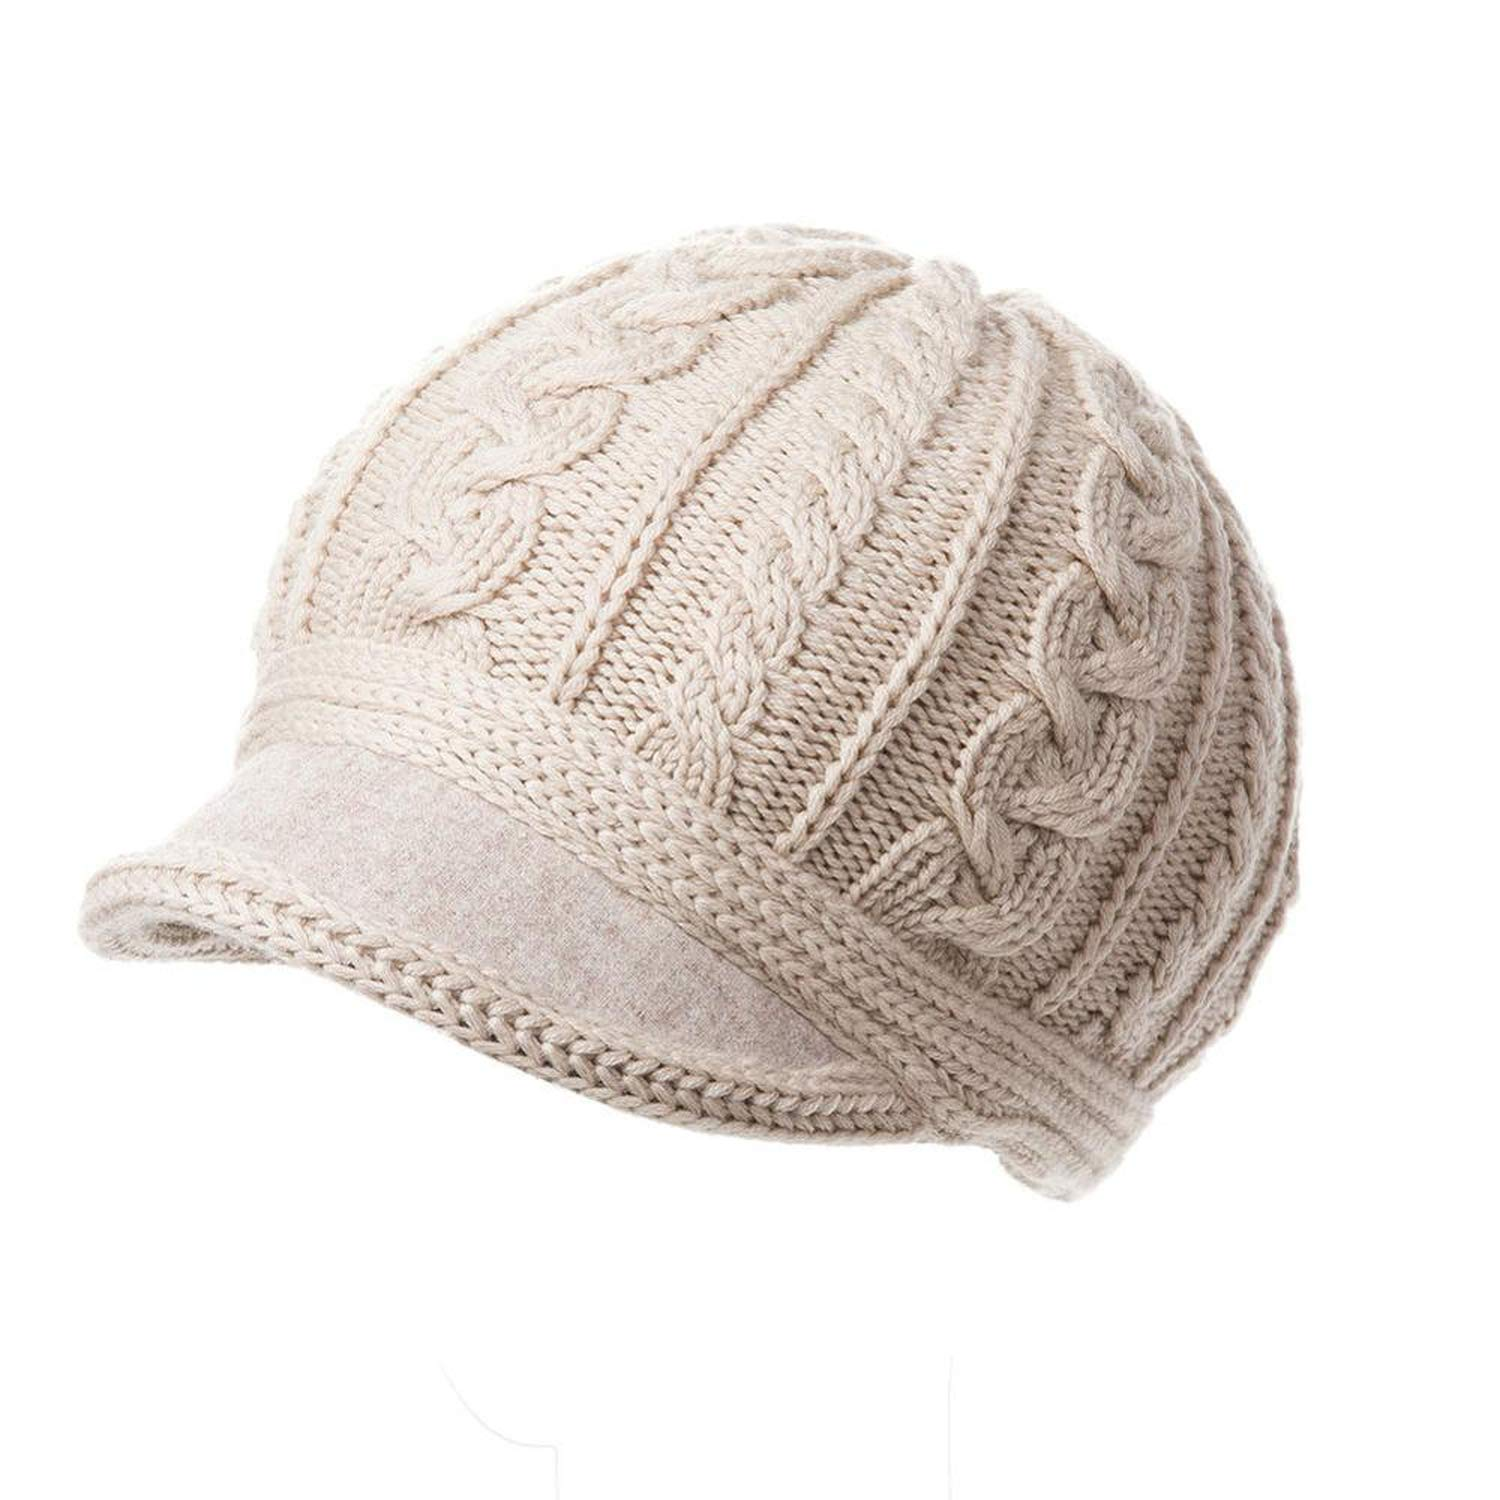 UKURO Women 100% Wool Knitted Newsboy Hats Visor Solid Autumn Winter Beret Cap Warm Gorras Planas, Beige at Amazon Womens Clothing store: